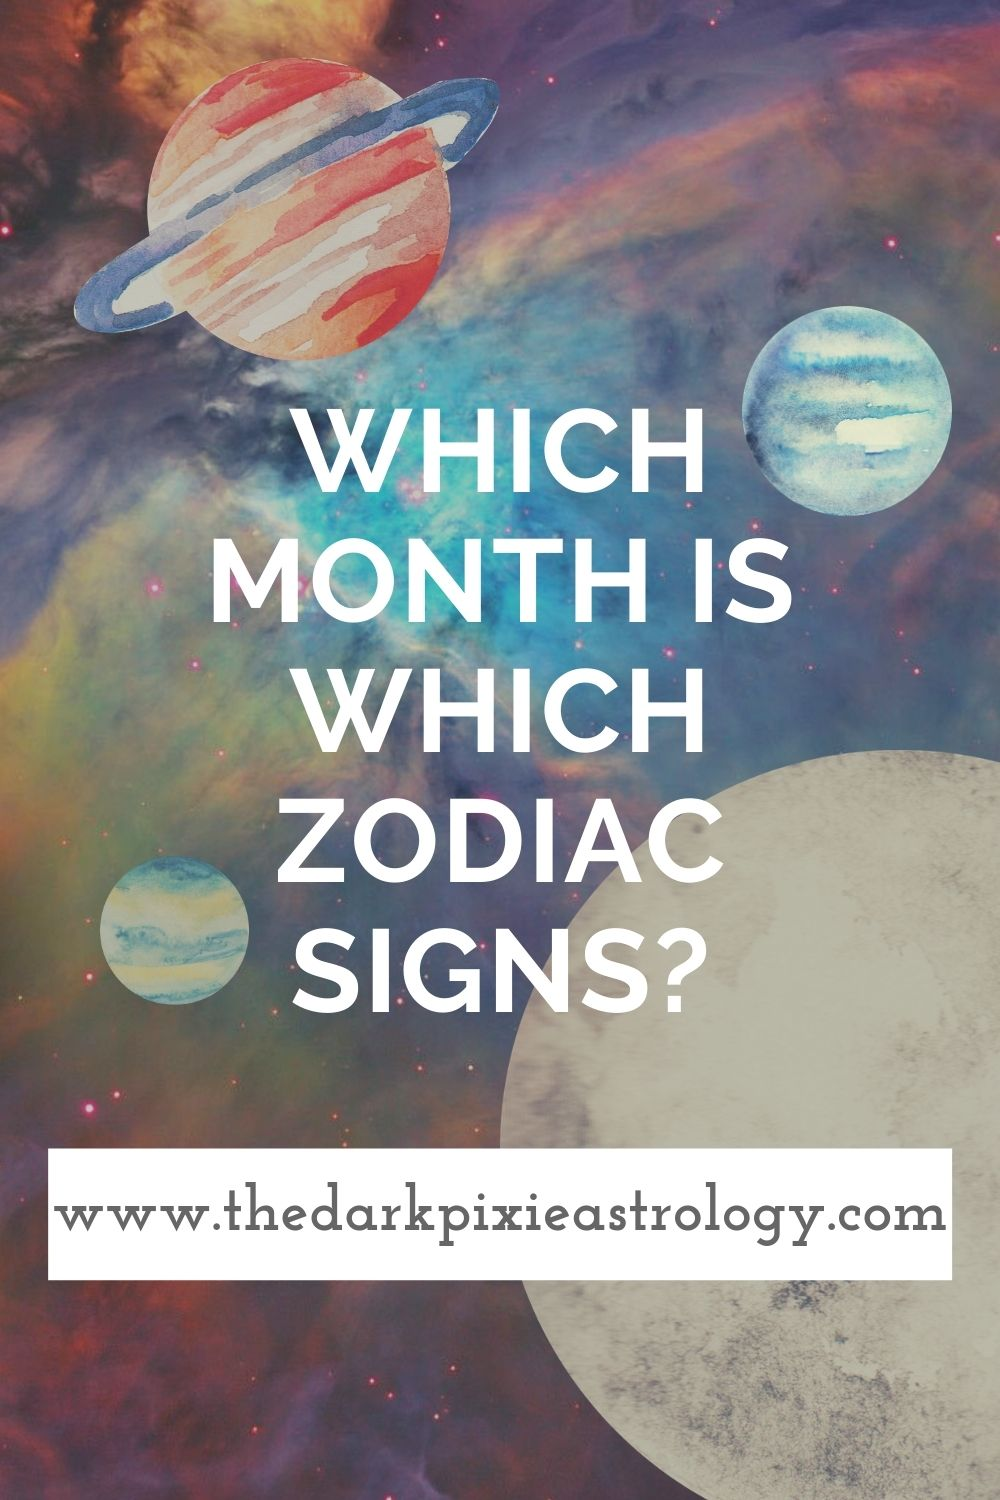 Which Month is Which Zodiac Signs? - The Dark Pixie Astrology